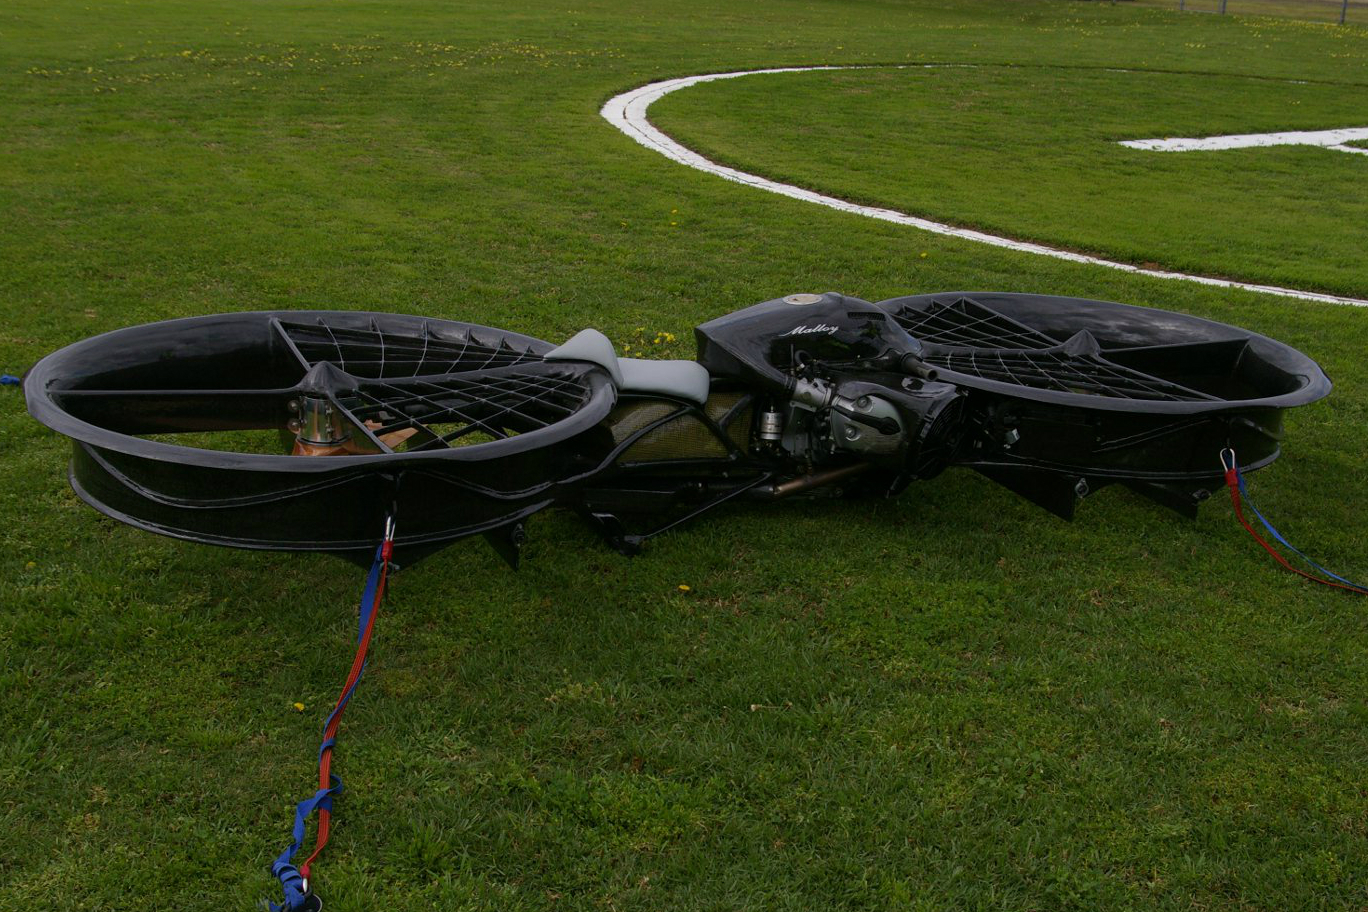 bmw-powered hoverbike has lift off   visordown